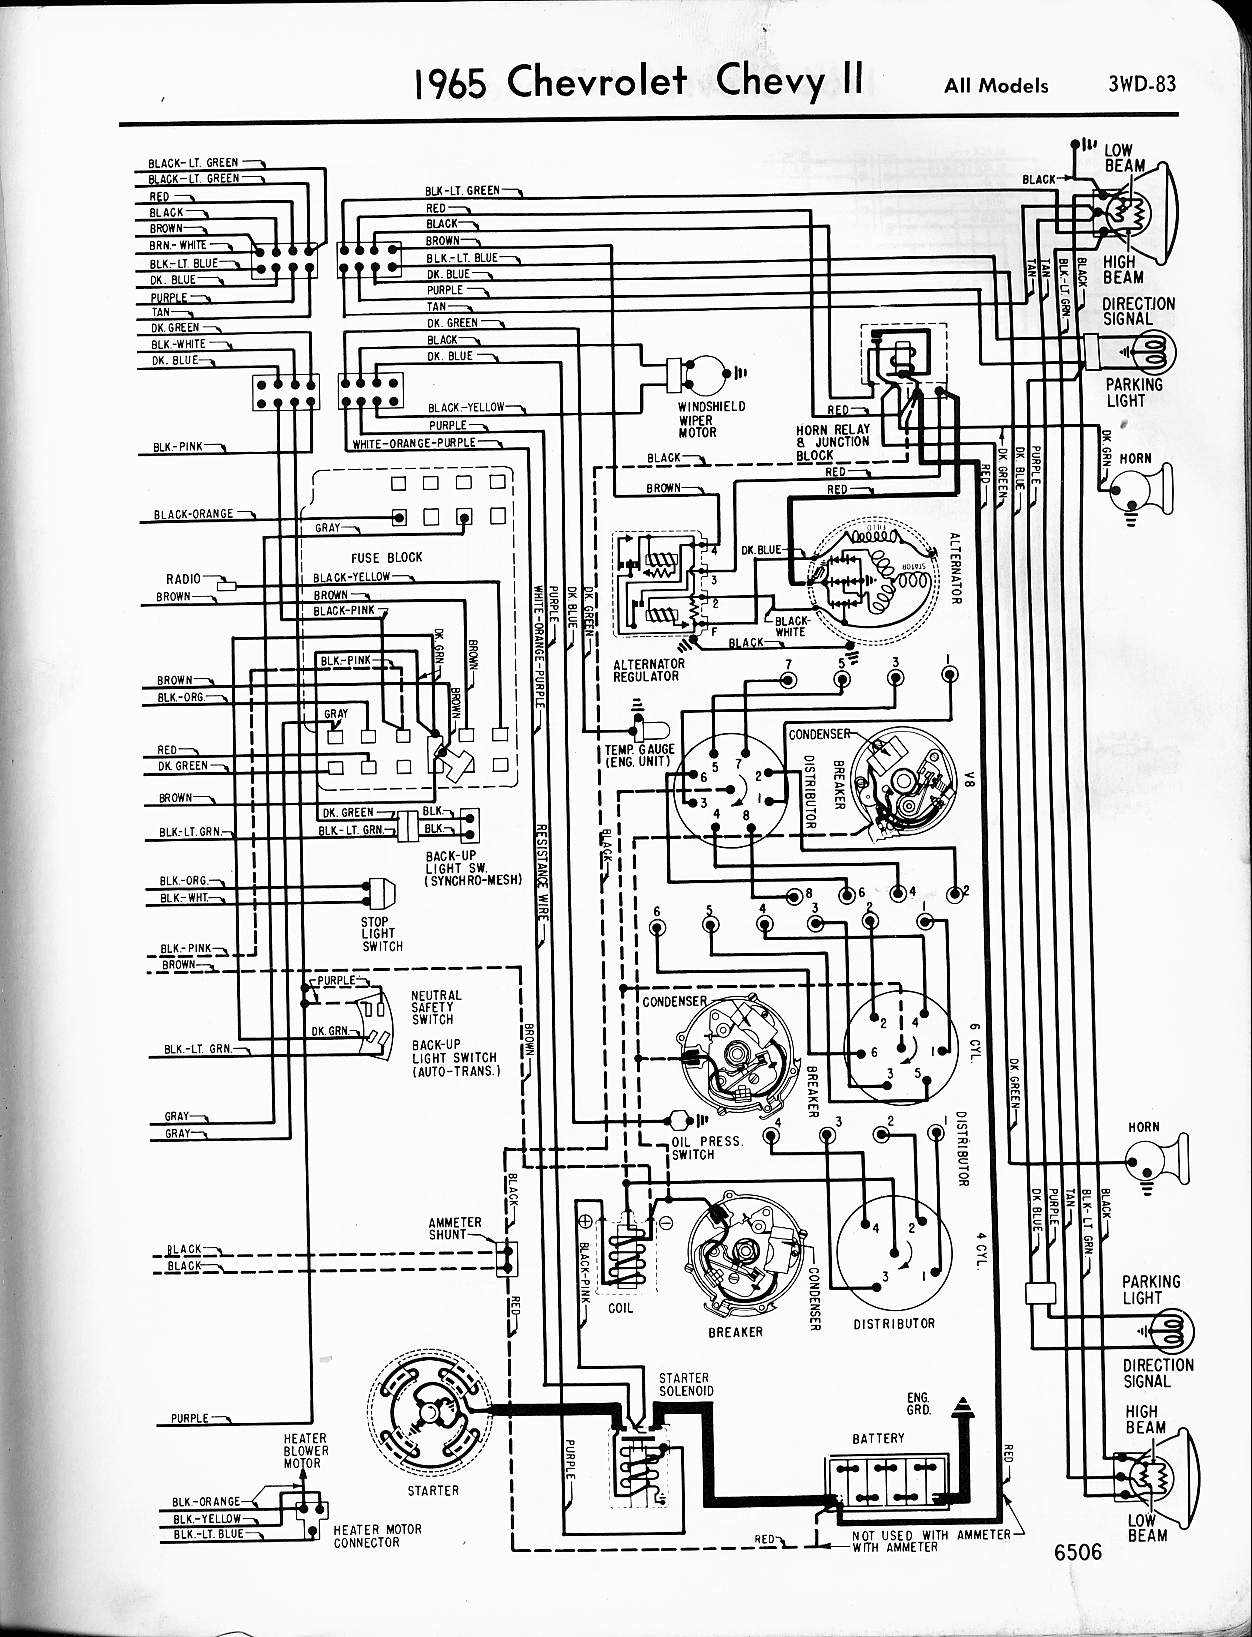 MWireChev65_3WD 083 57 65 chevy wiring diagrams 1965 C10 Wiring-Diagram at fashall.co